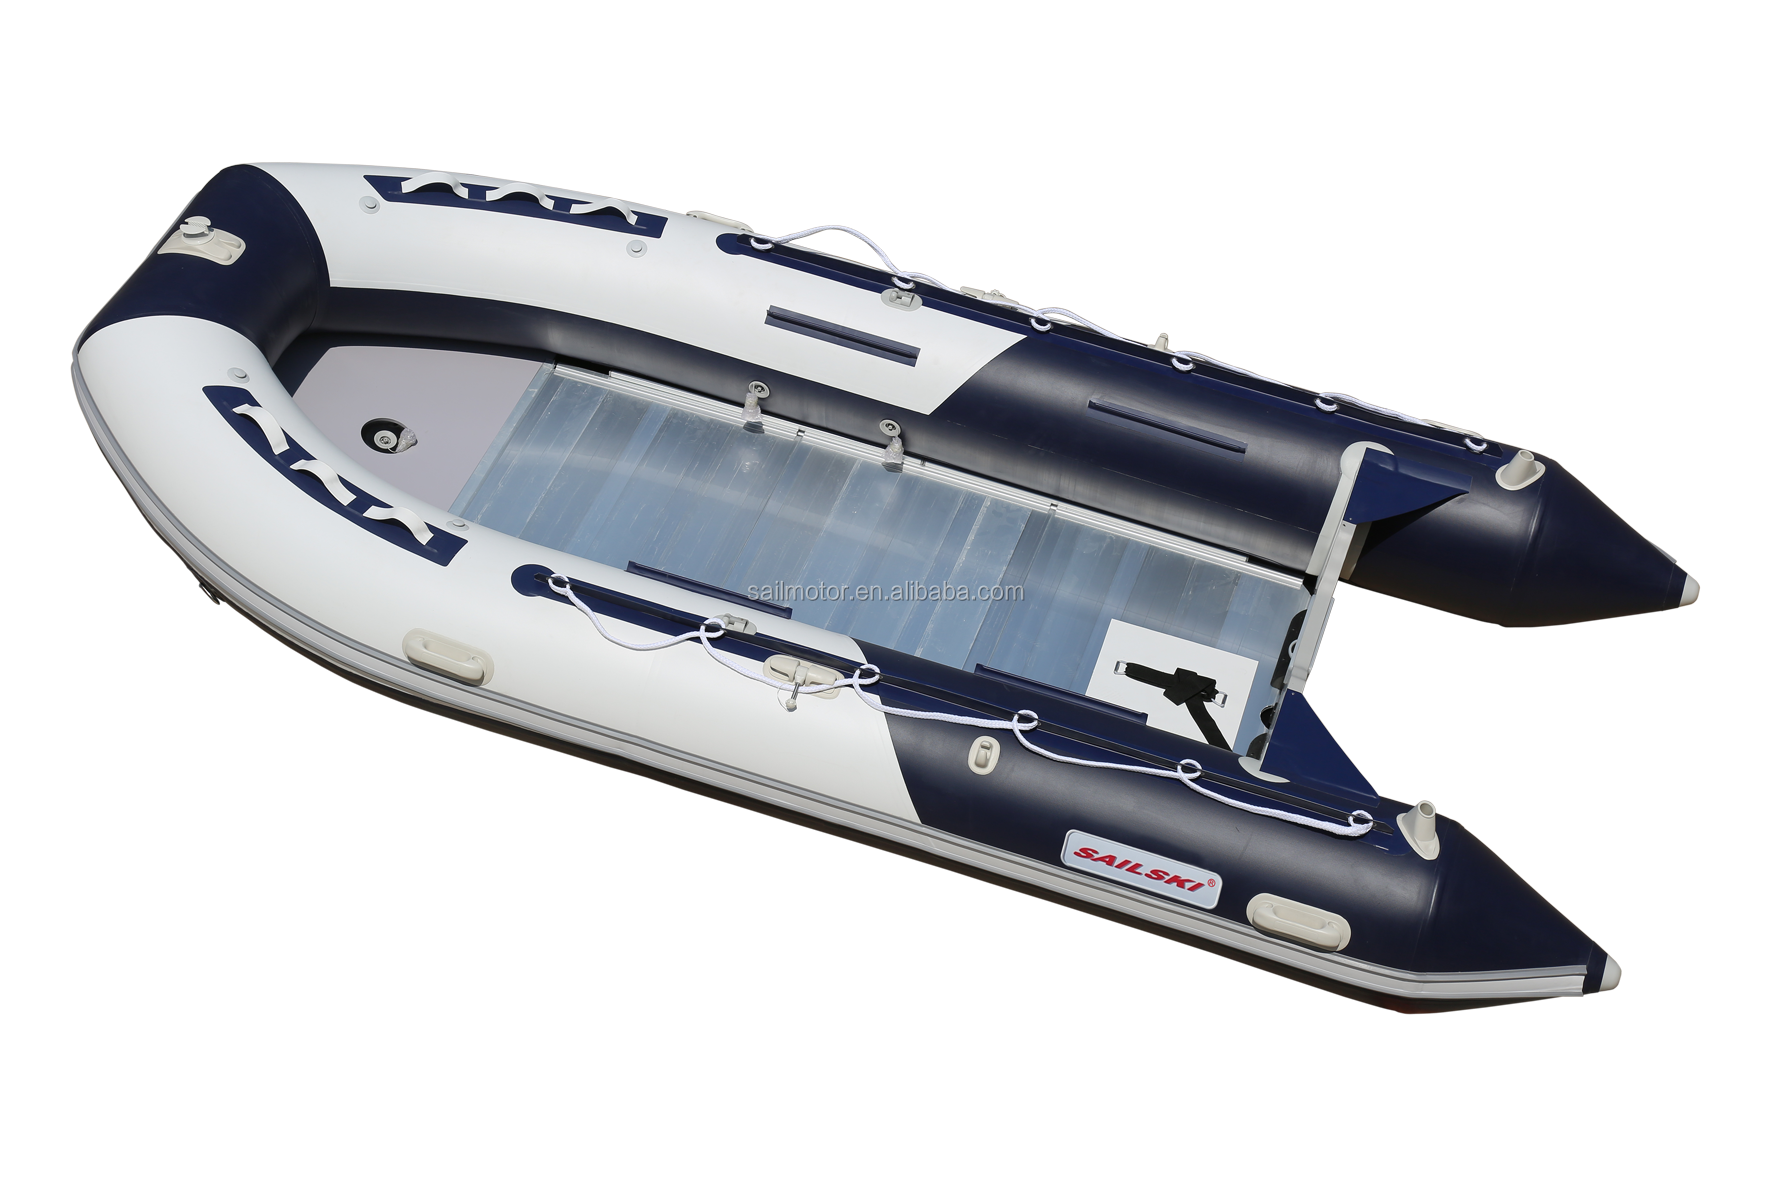 SAILSKI 14ft inflatable boat for 8 person, Aluminum floor